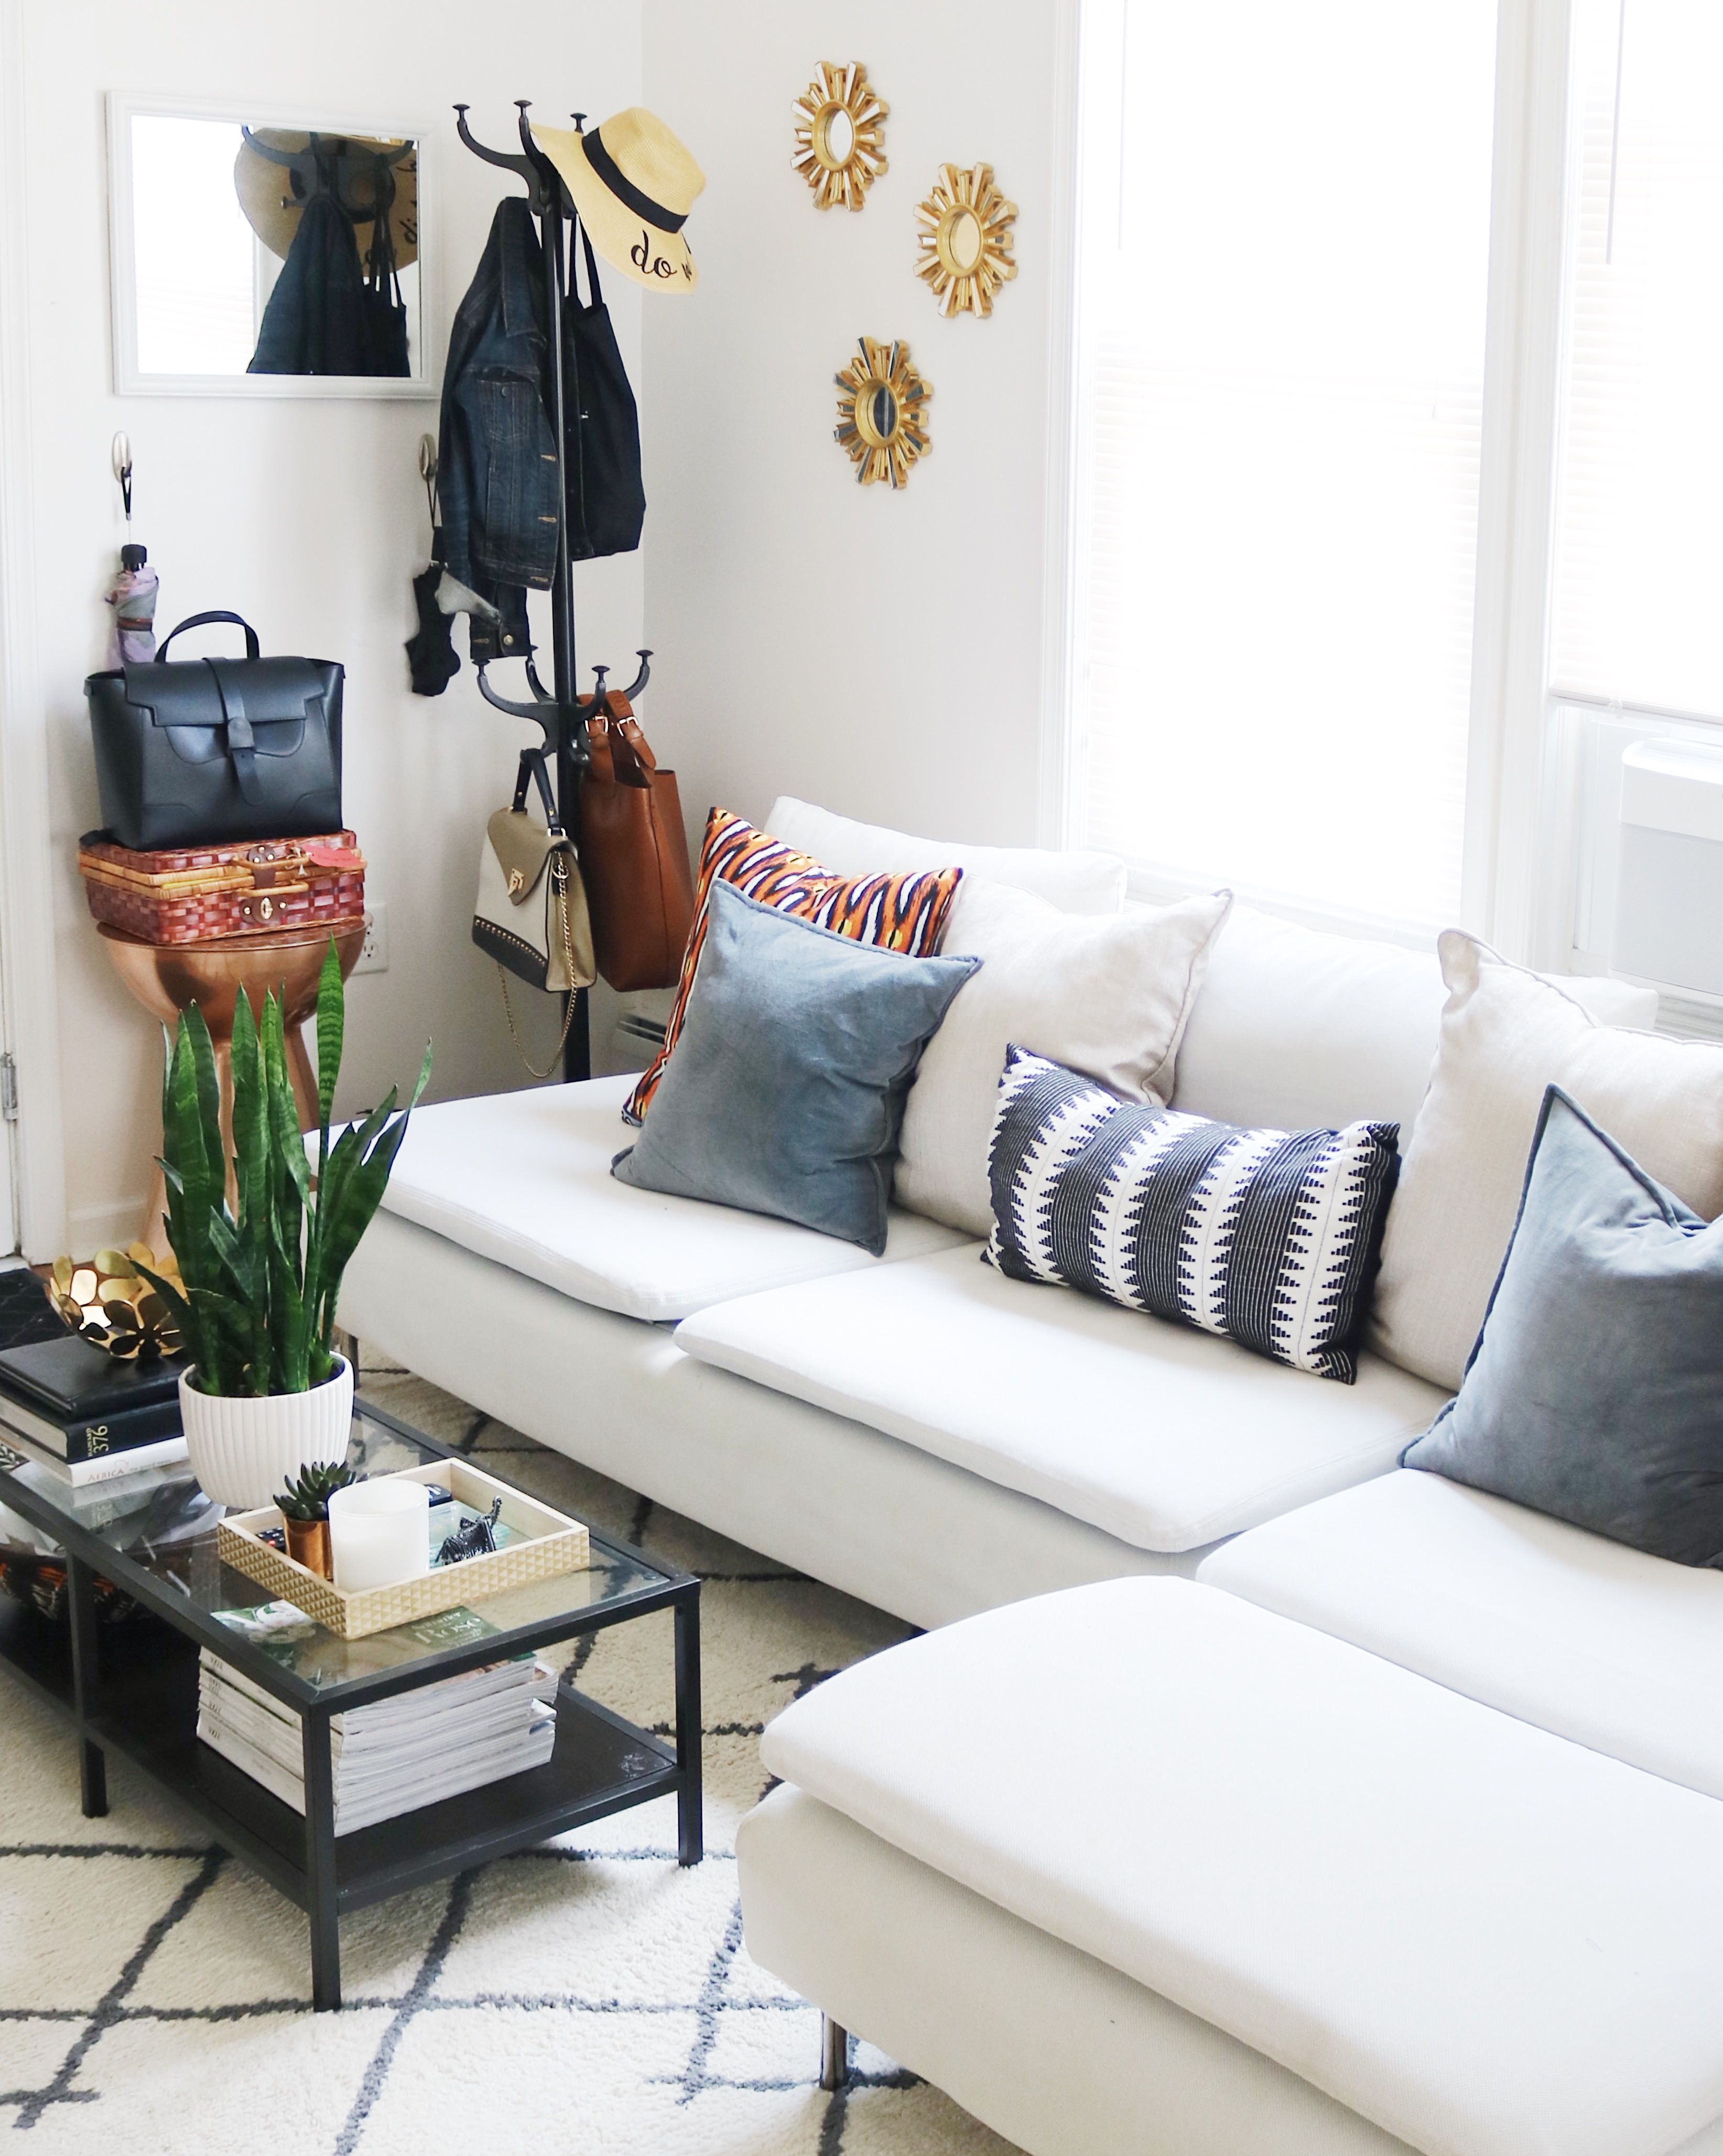 Ikea Soderhamn White Sofa Coat Tree Apartment Living Room Decor Endearing Affordable Living Room Designs 2018